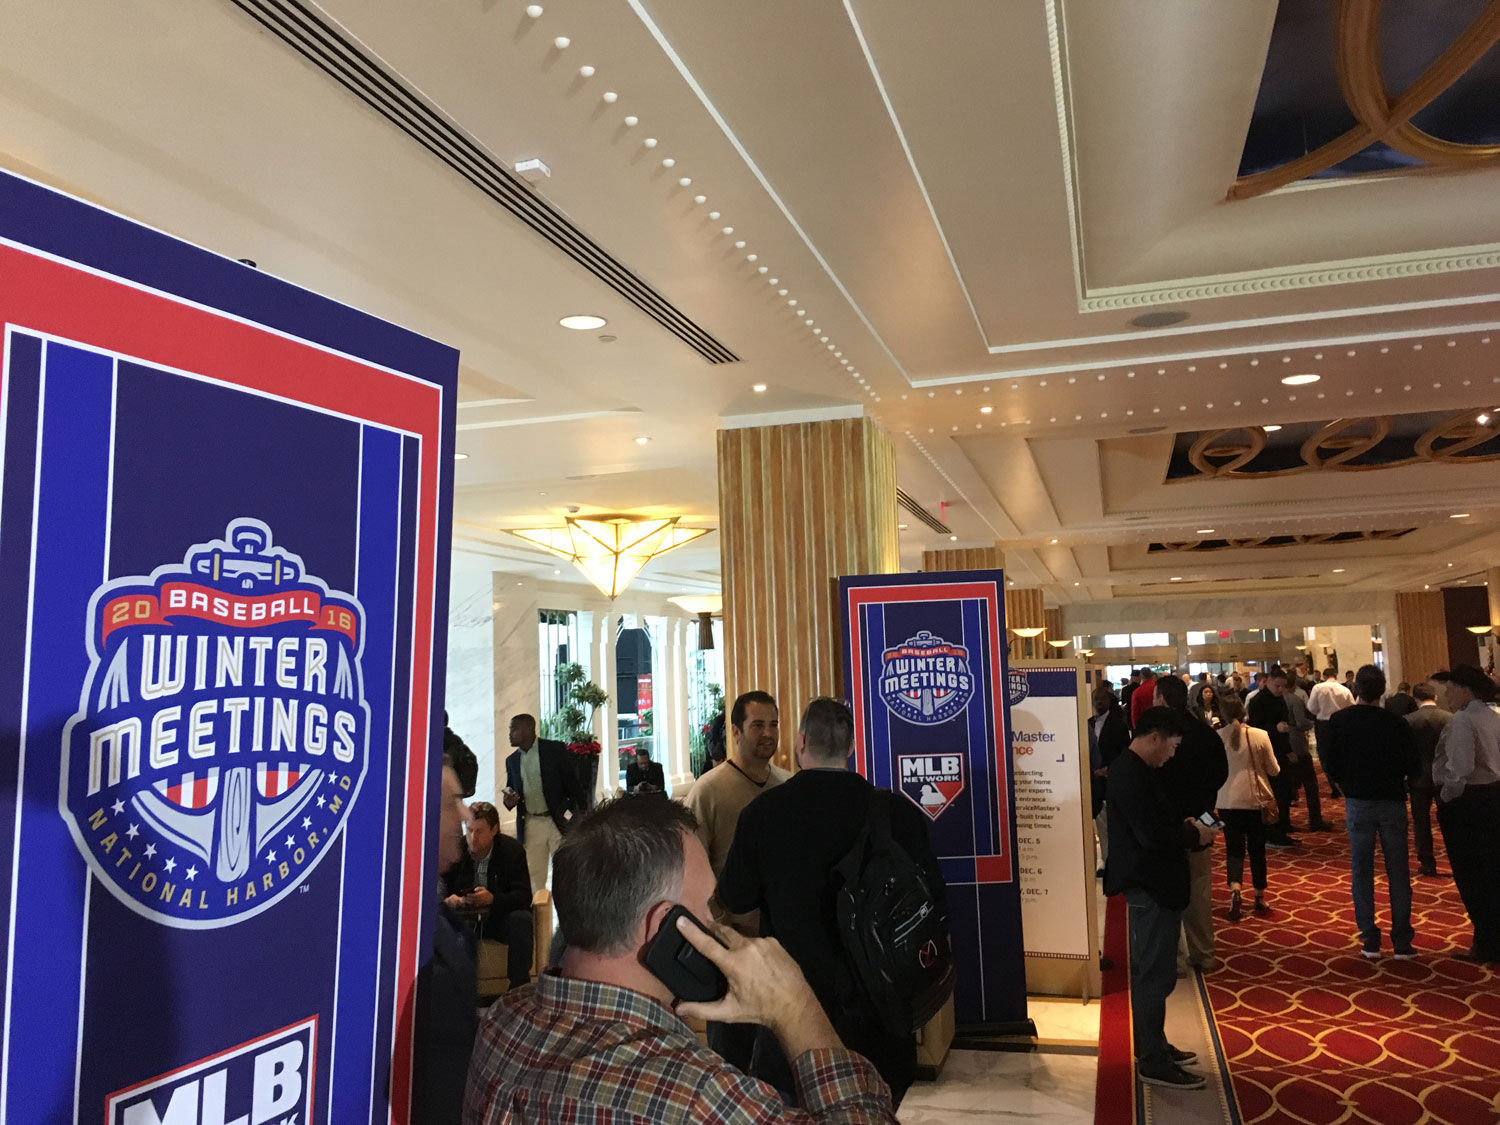 The hotel lobby at the Gaylord National Harbor Hotel, the epicenter for this year's baseball Winter Meetings. (WTOP/Noah Frank)